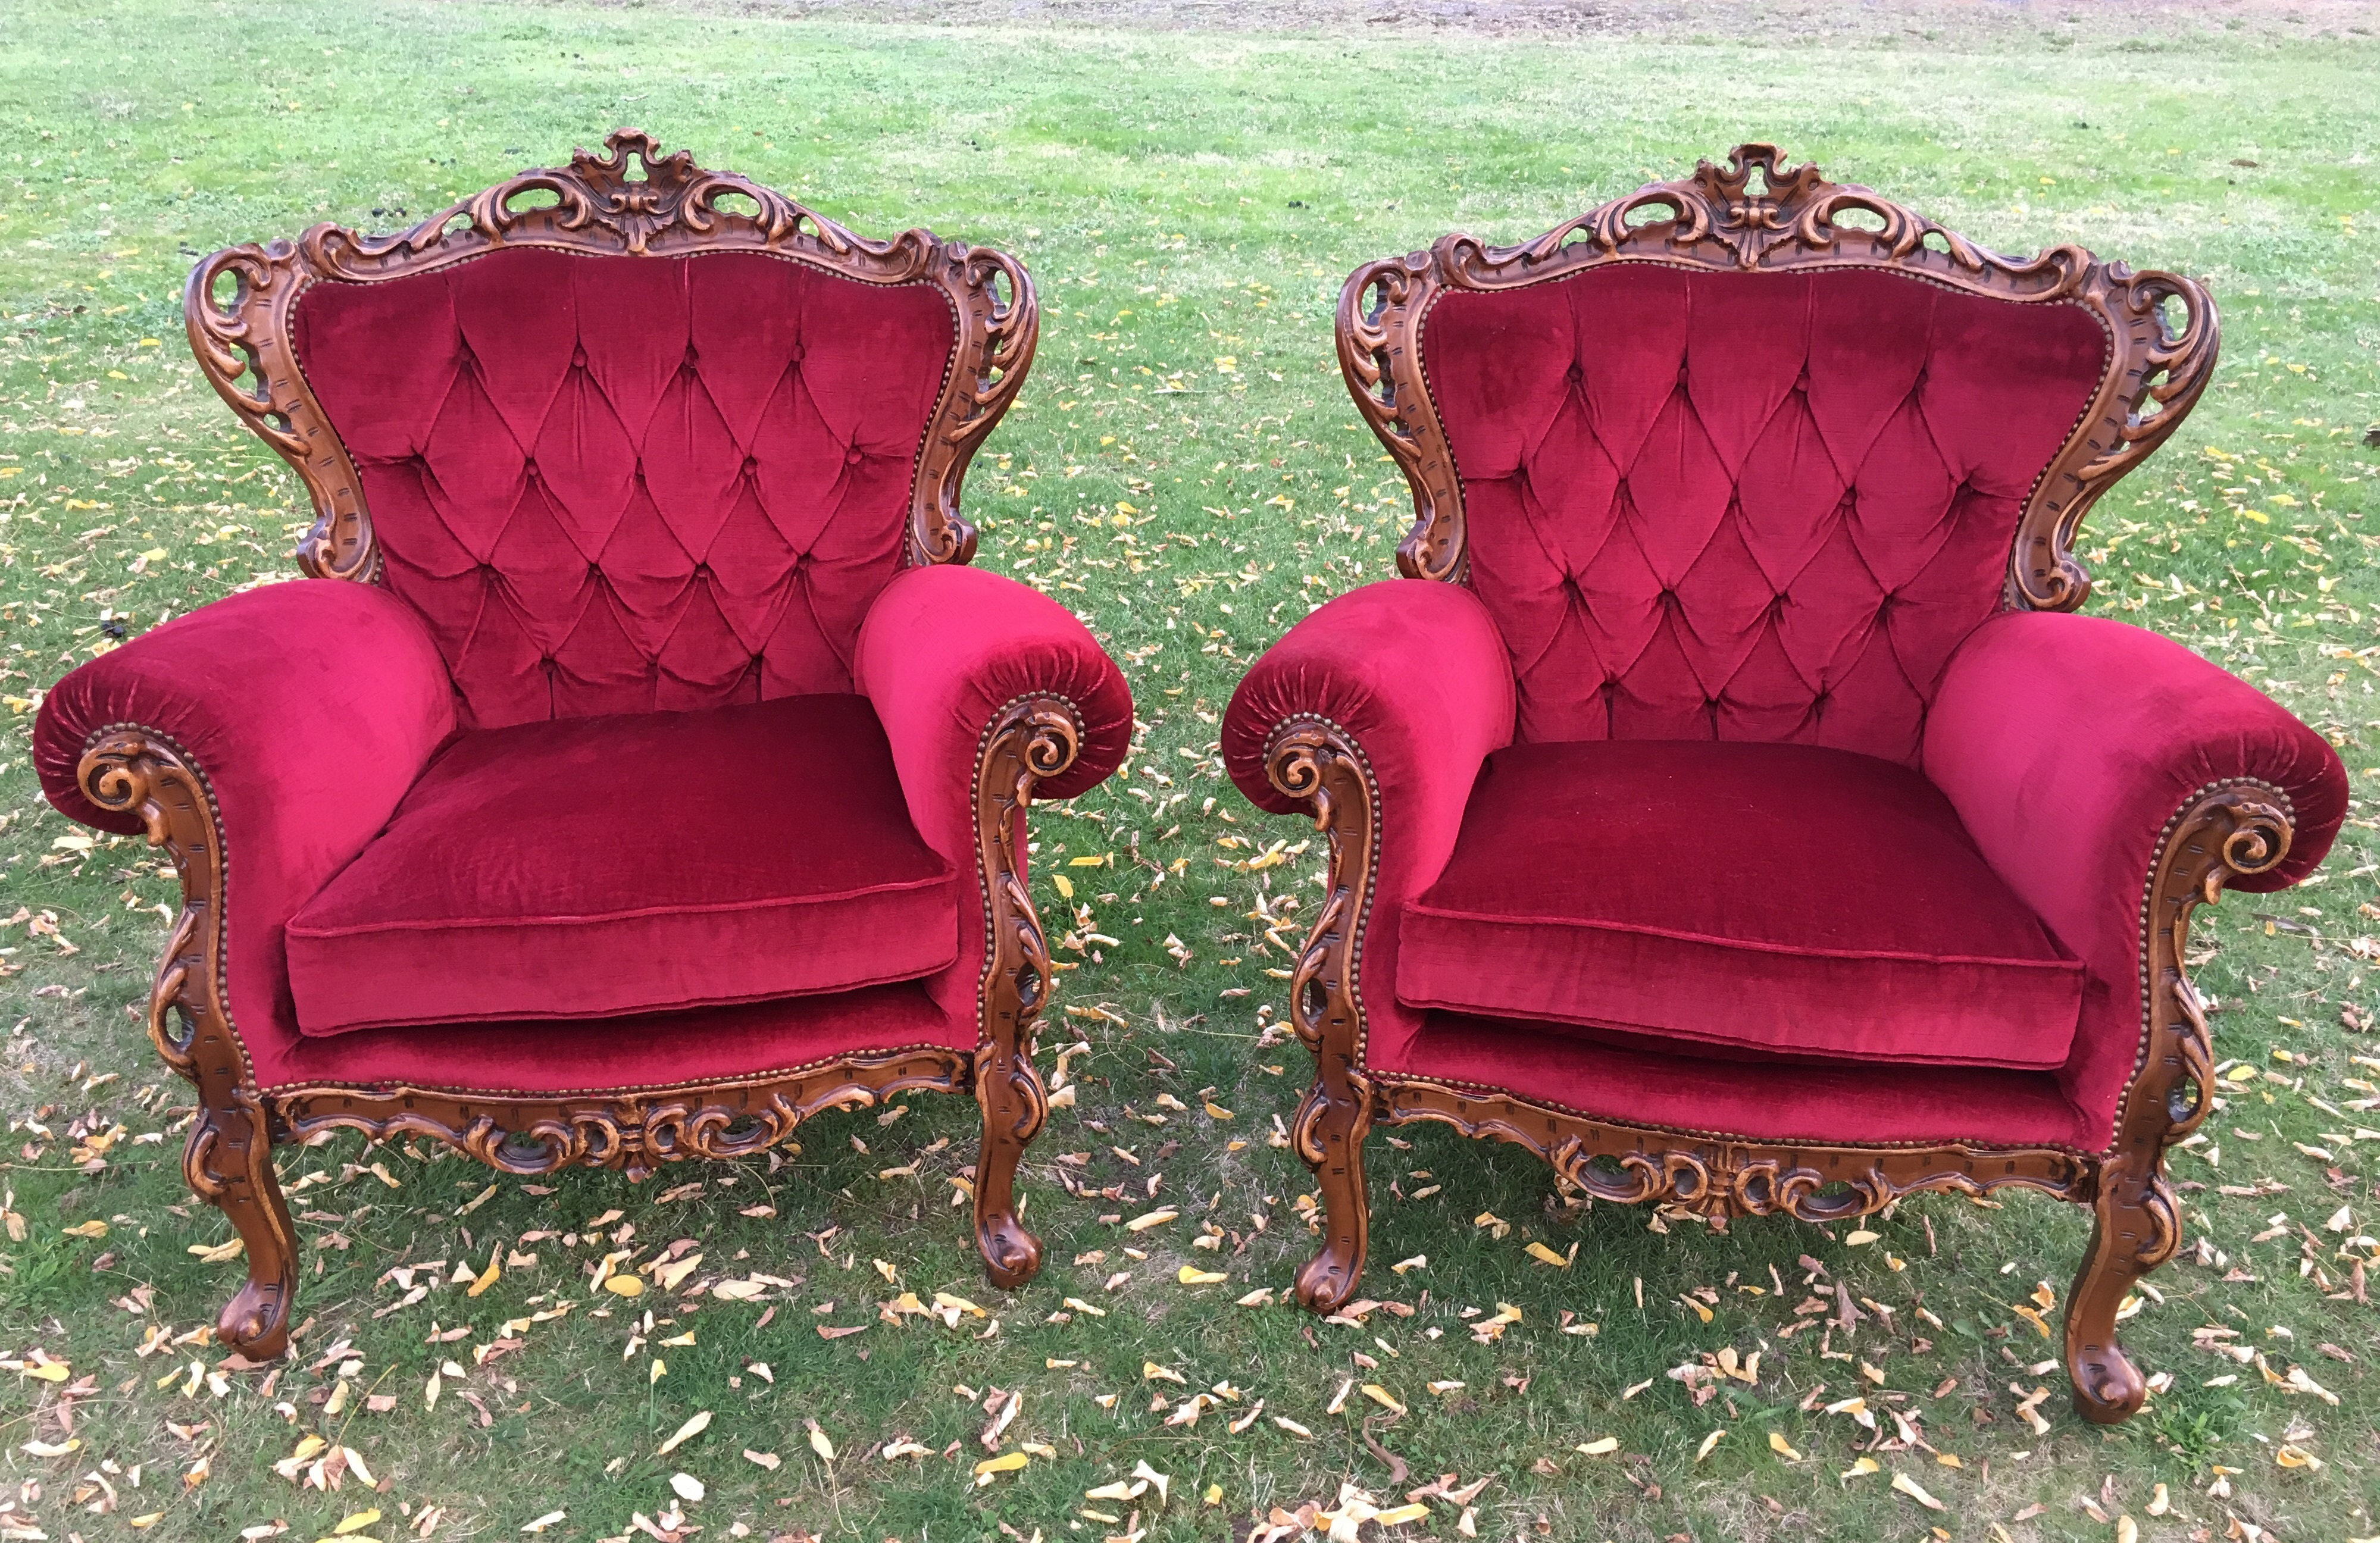 ADTR Red Armchairs